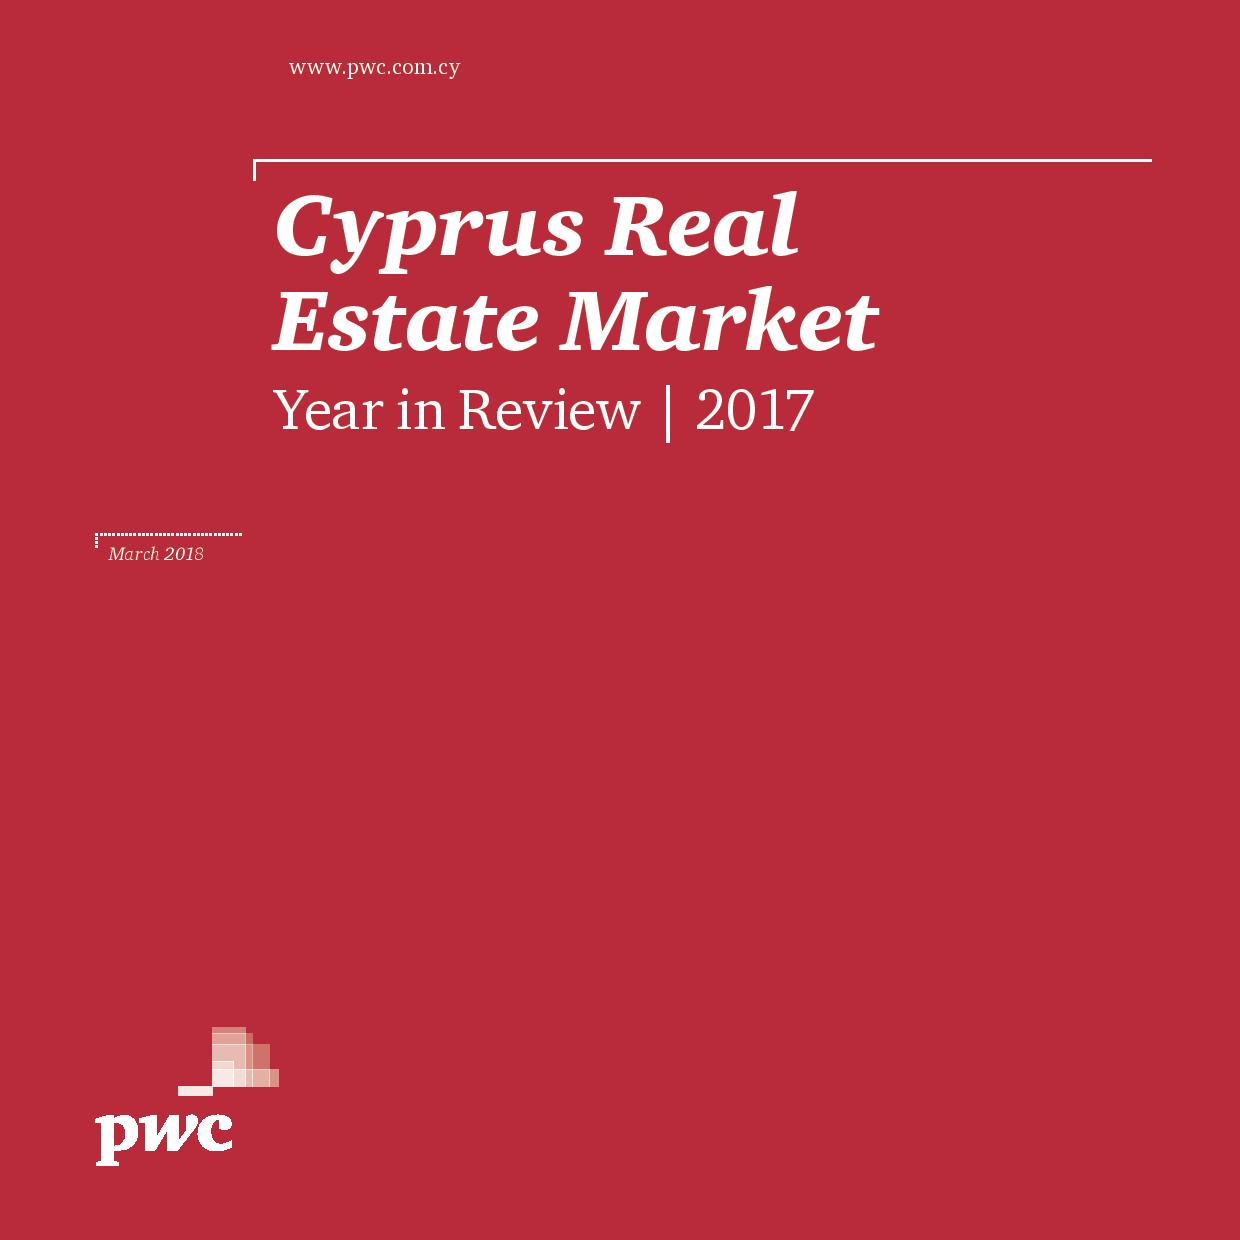 Cyprus Real Estate Market - Year in Review: 2017